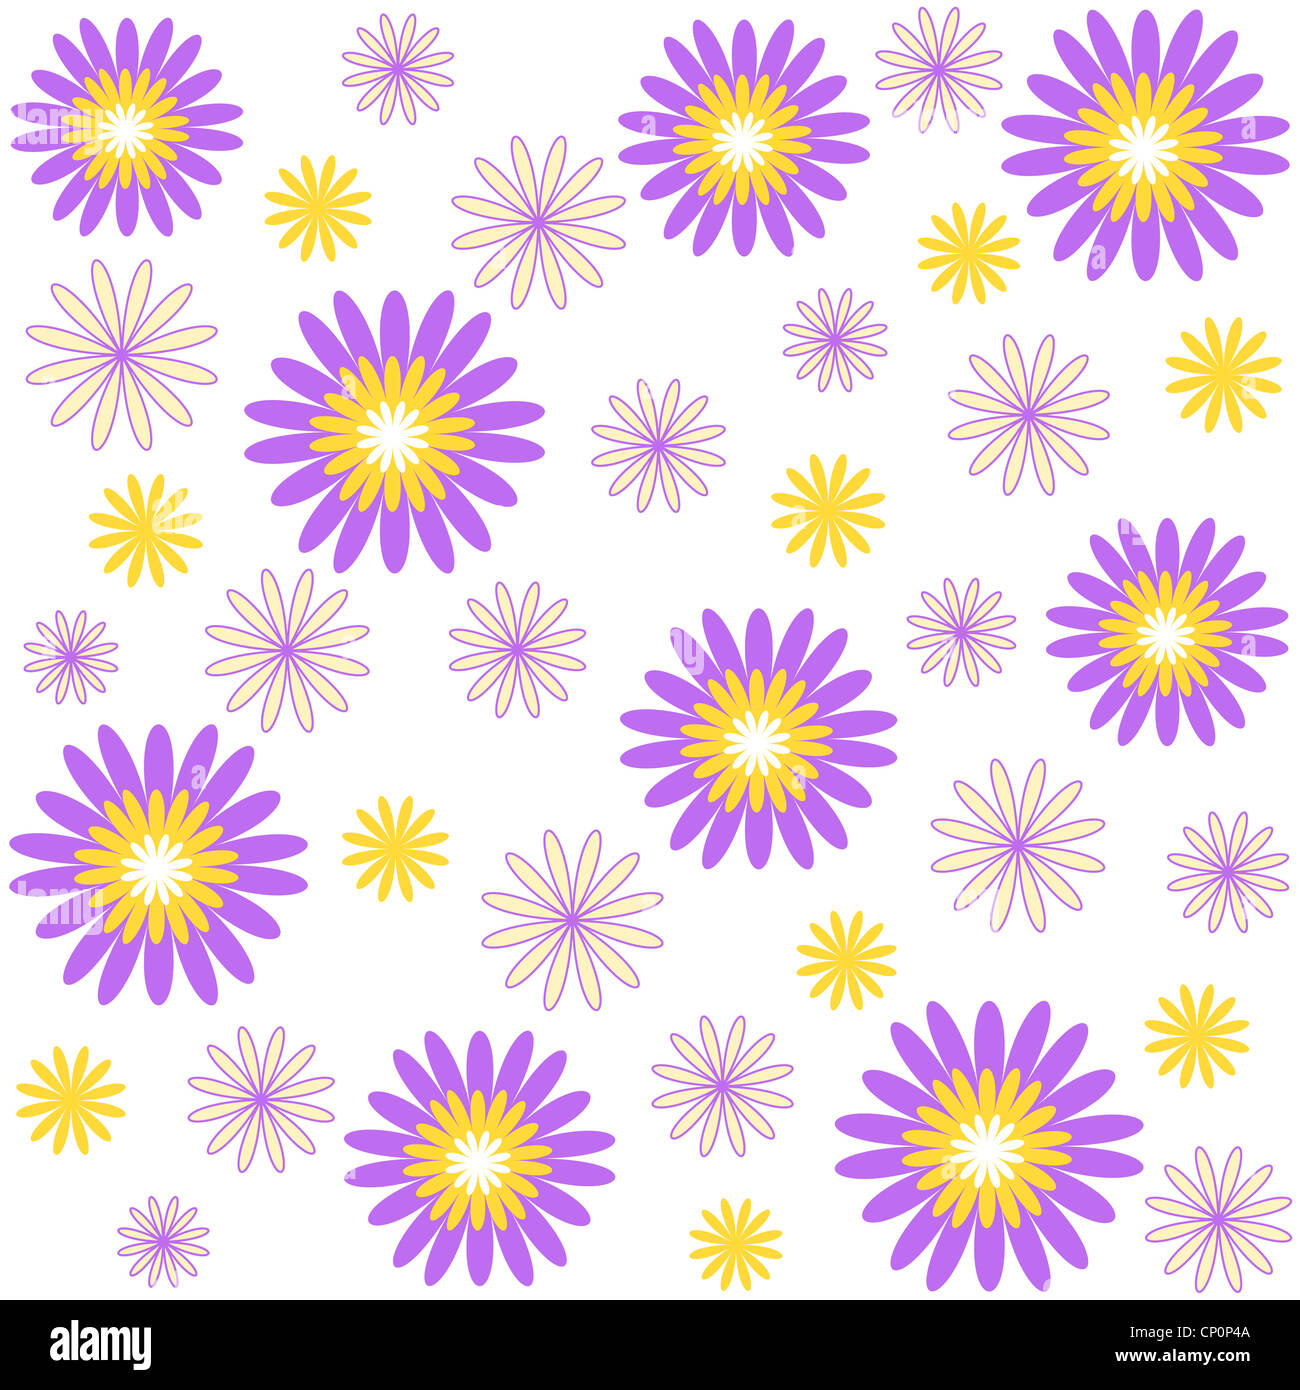 Violet and yellow floral pattern on white Stock Photo